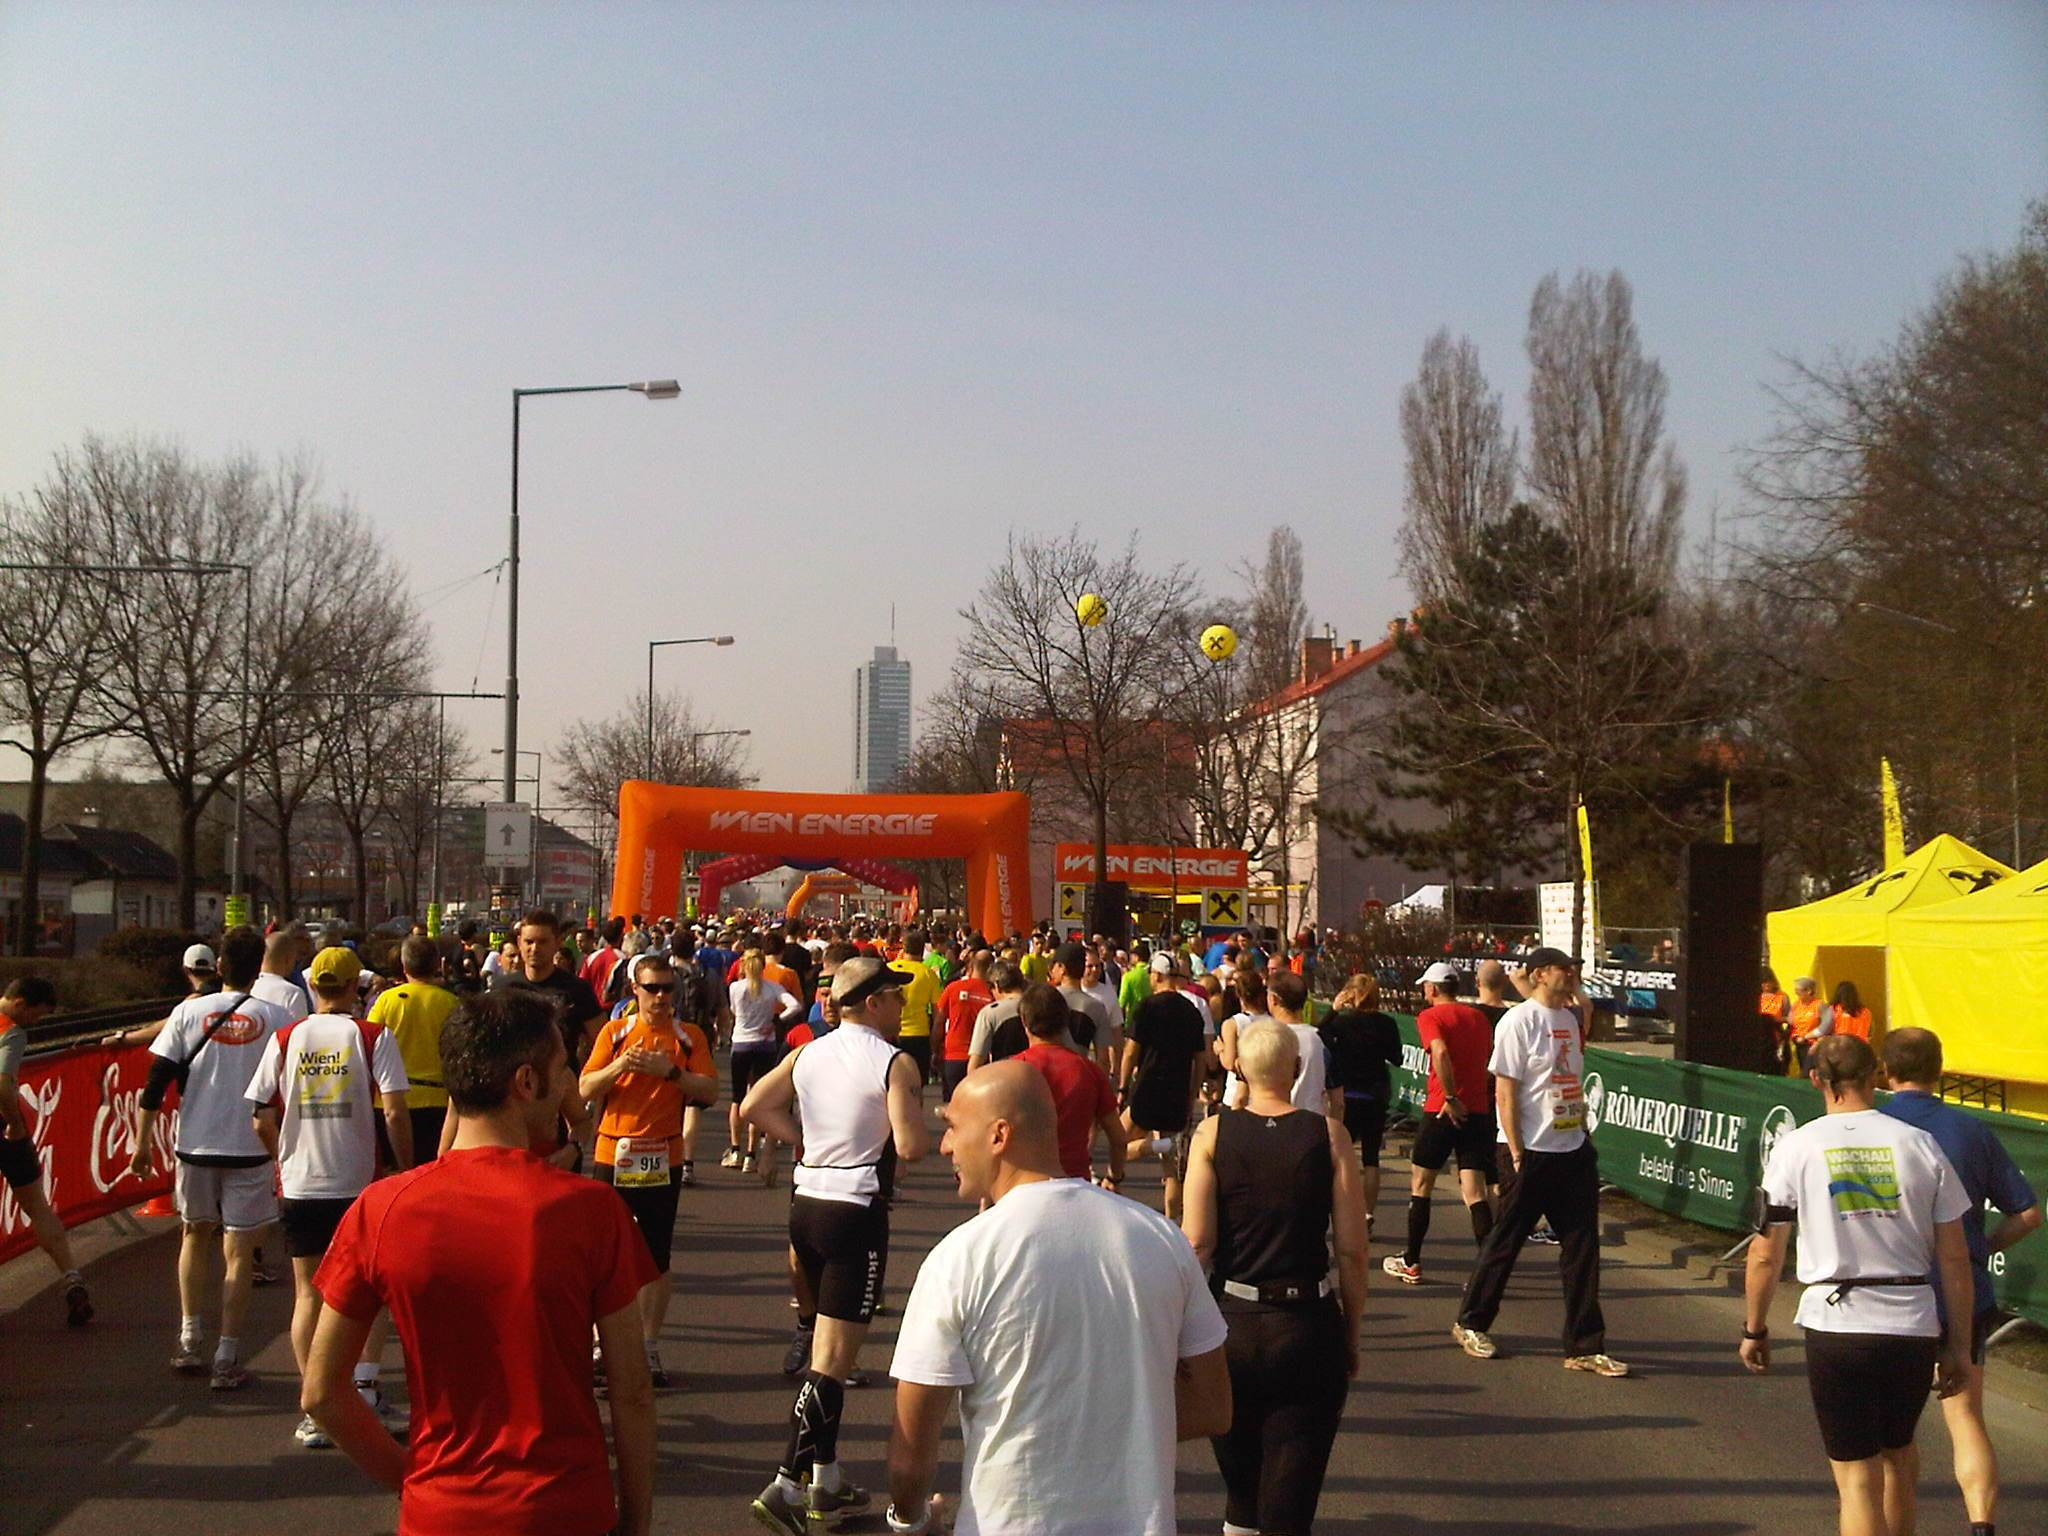 Wien Energy halbmarathon – before start